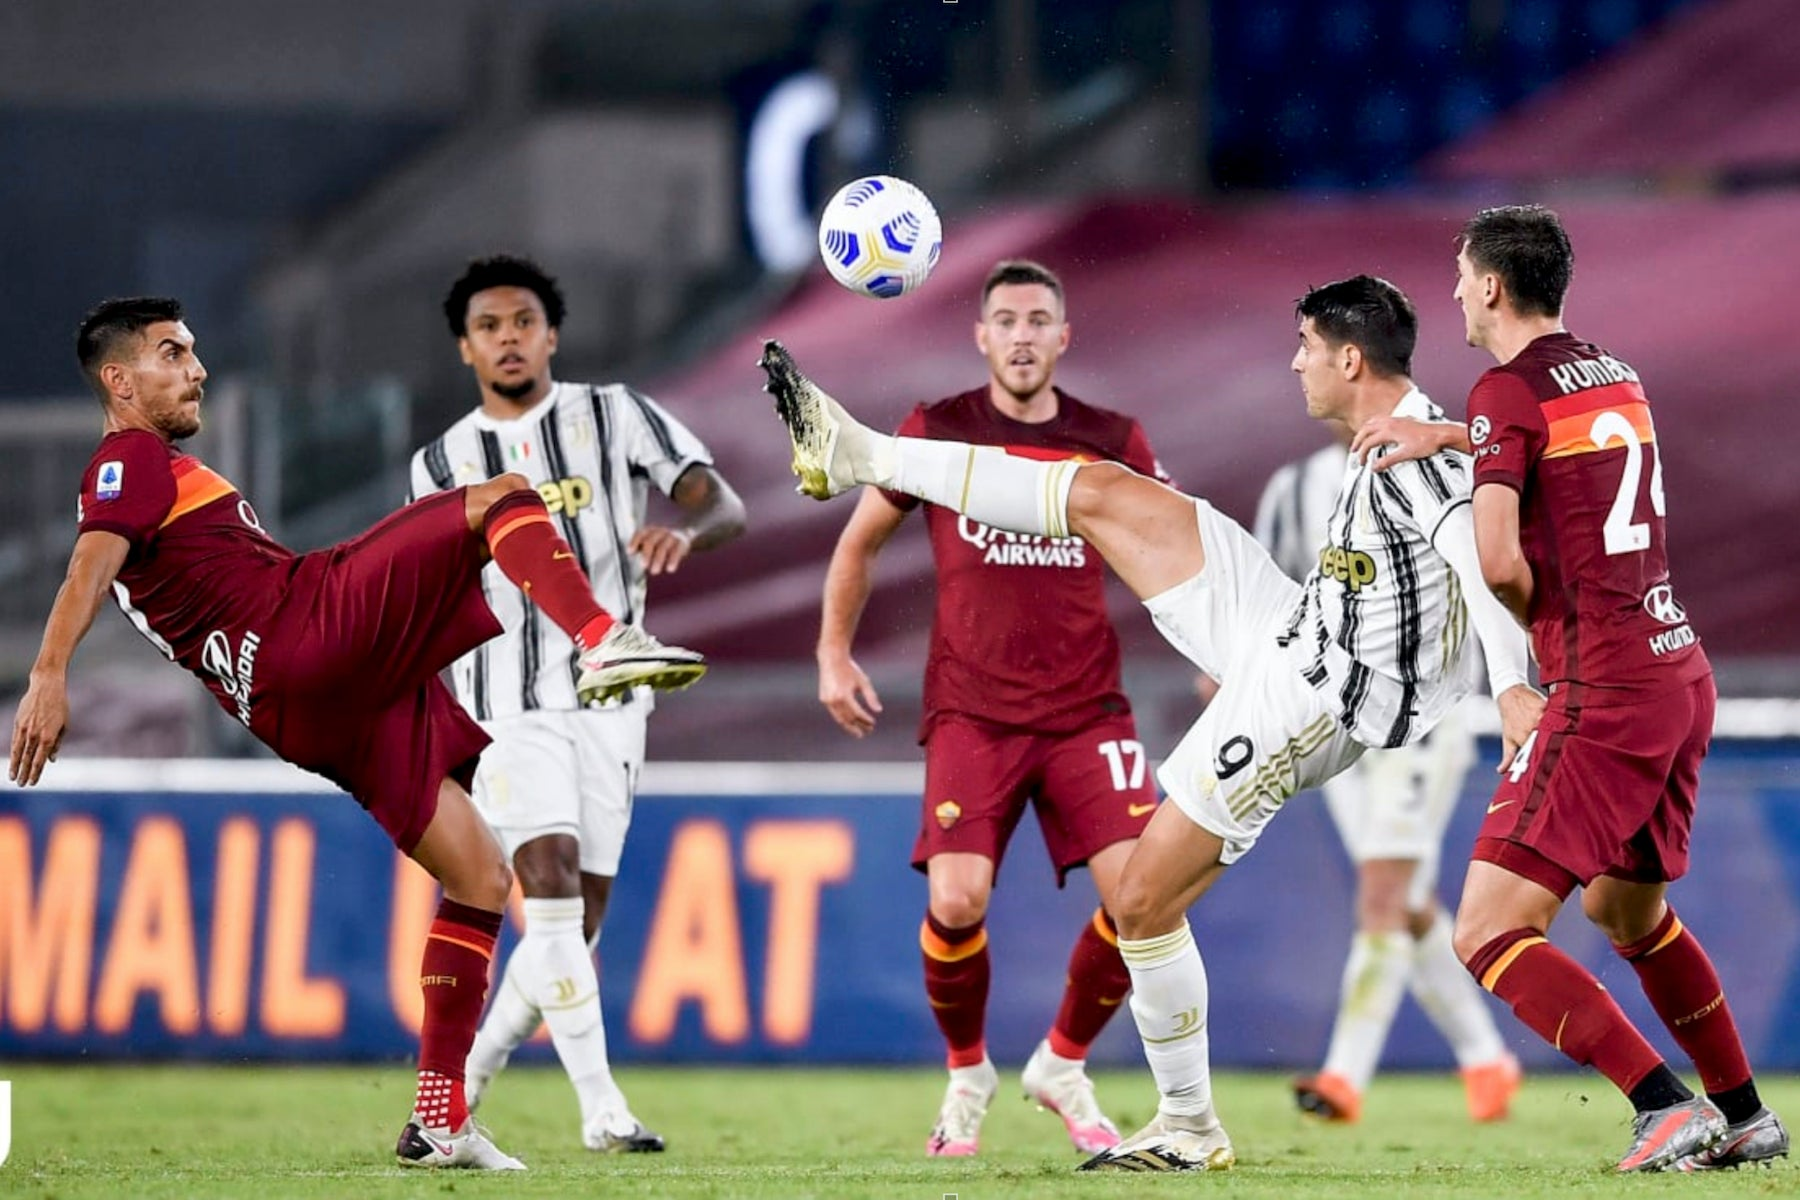 juventus game football players battling for ball red and white uniforms